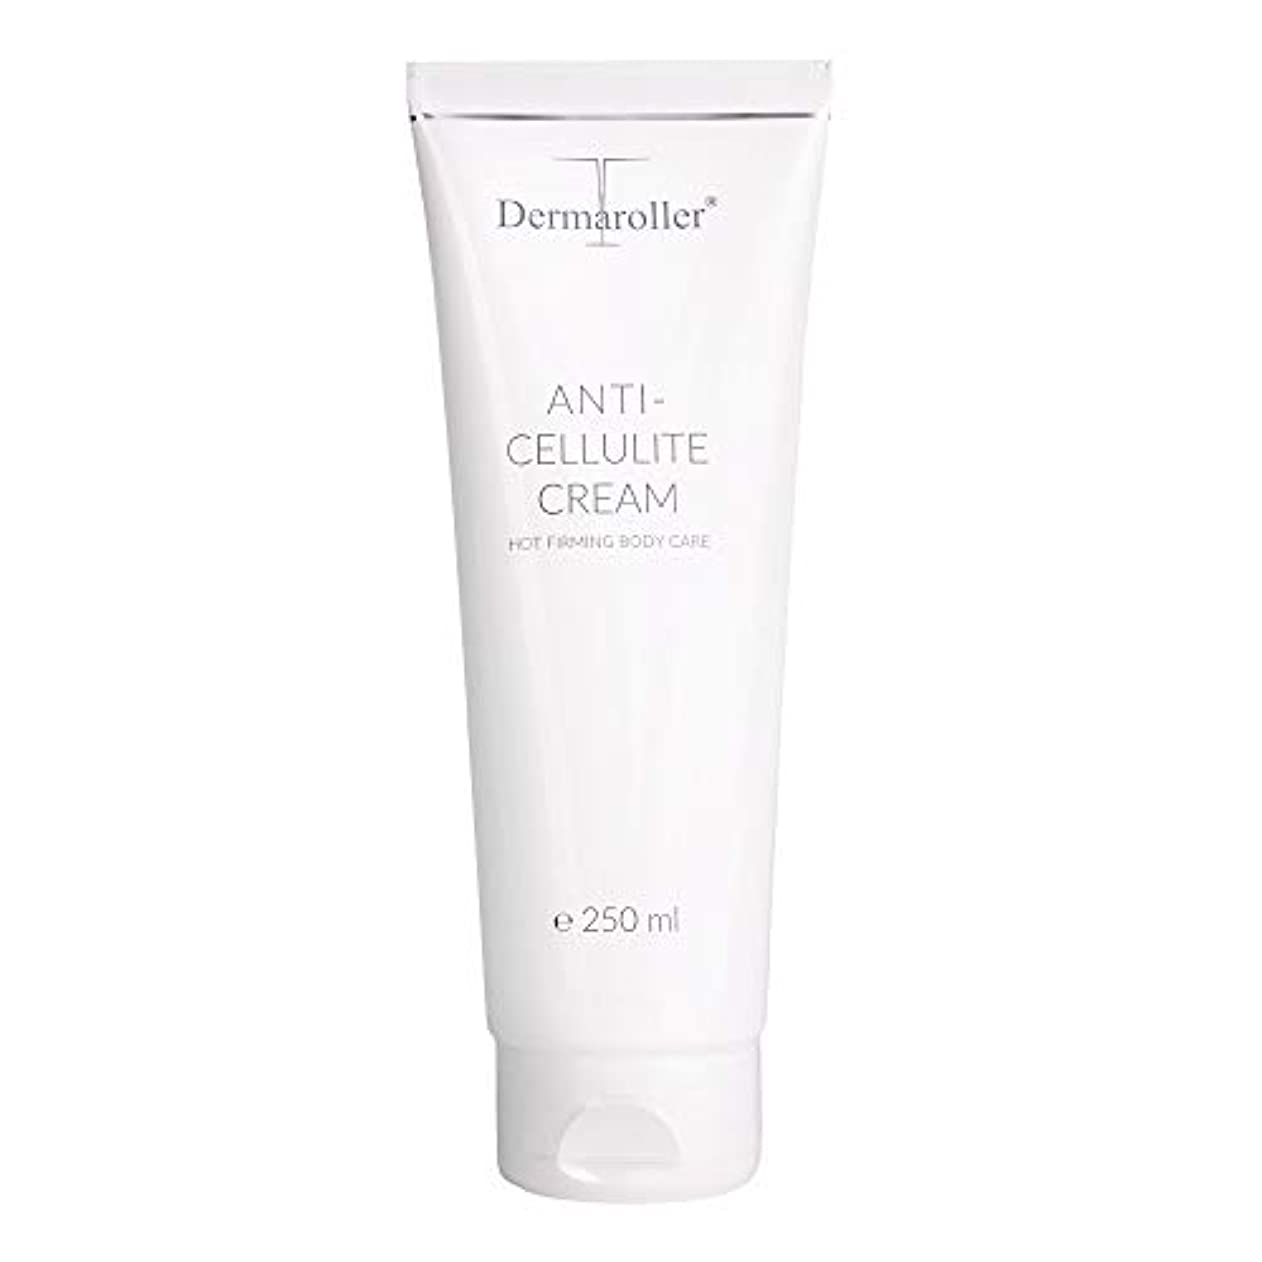 Dermaroller アンチ セルライト クリーム 250ml [Dermaroller]Anti-Cellulite Cream